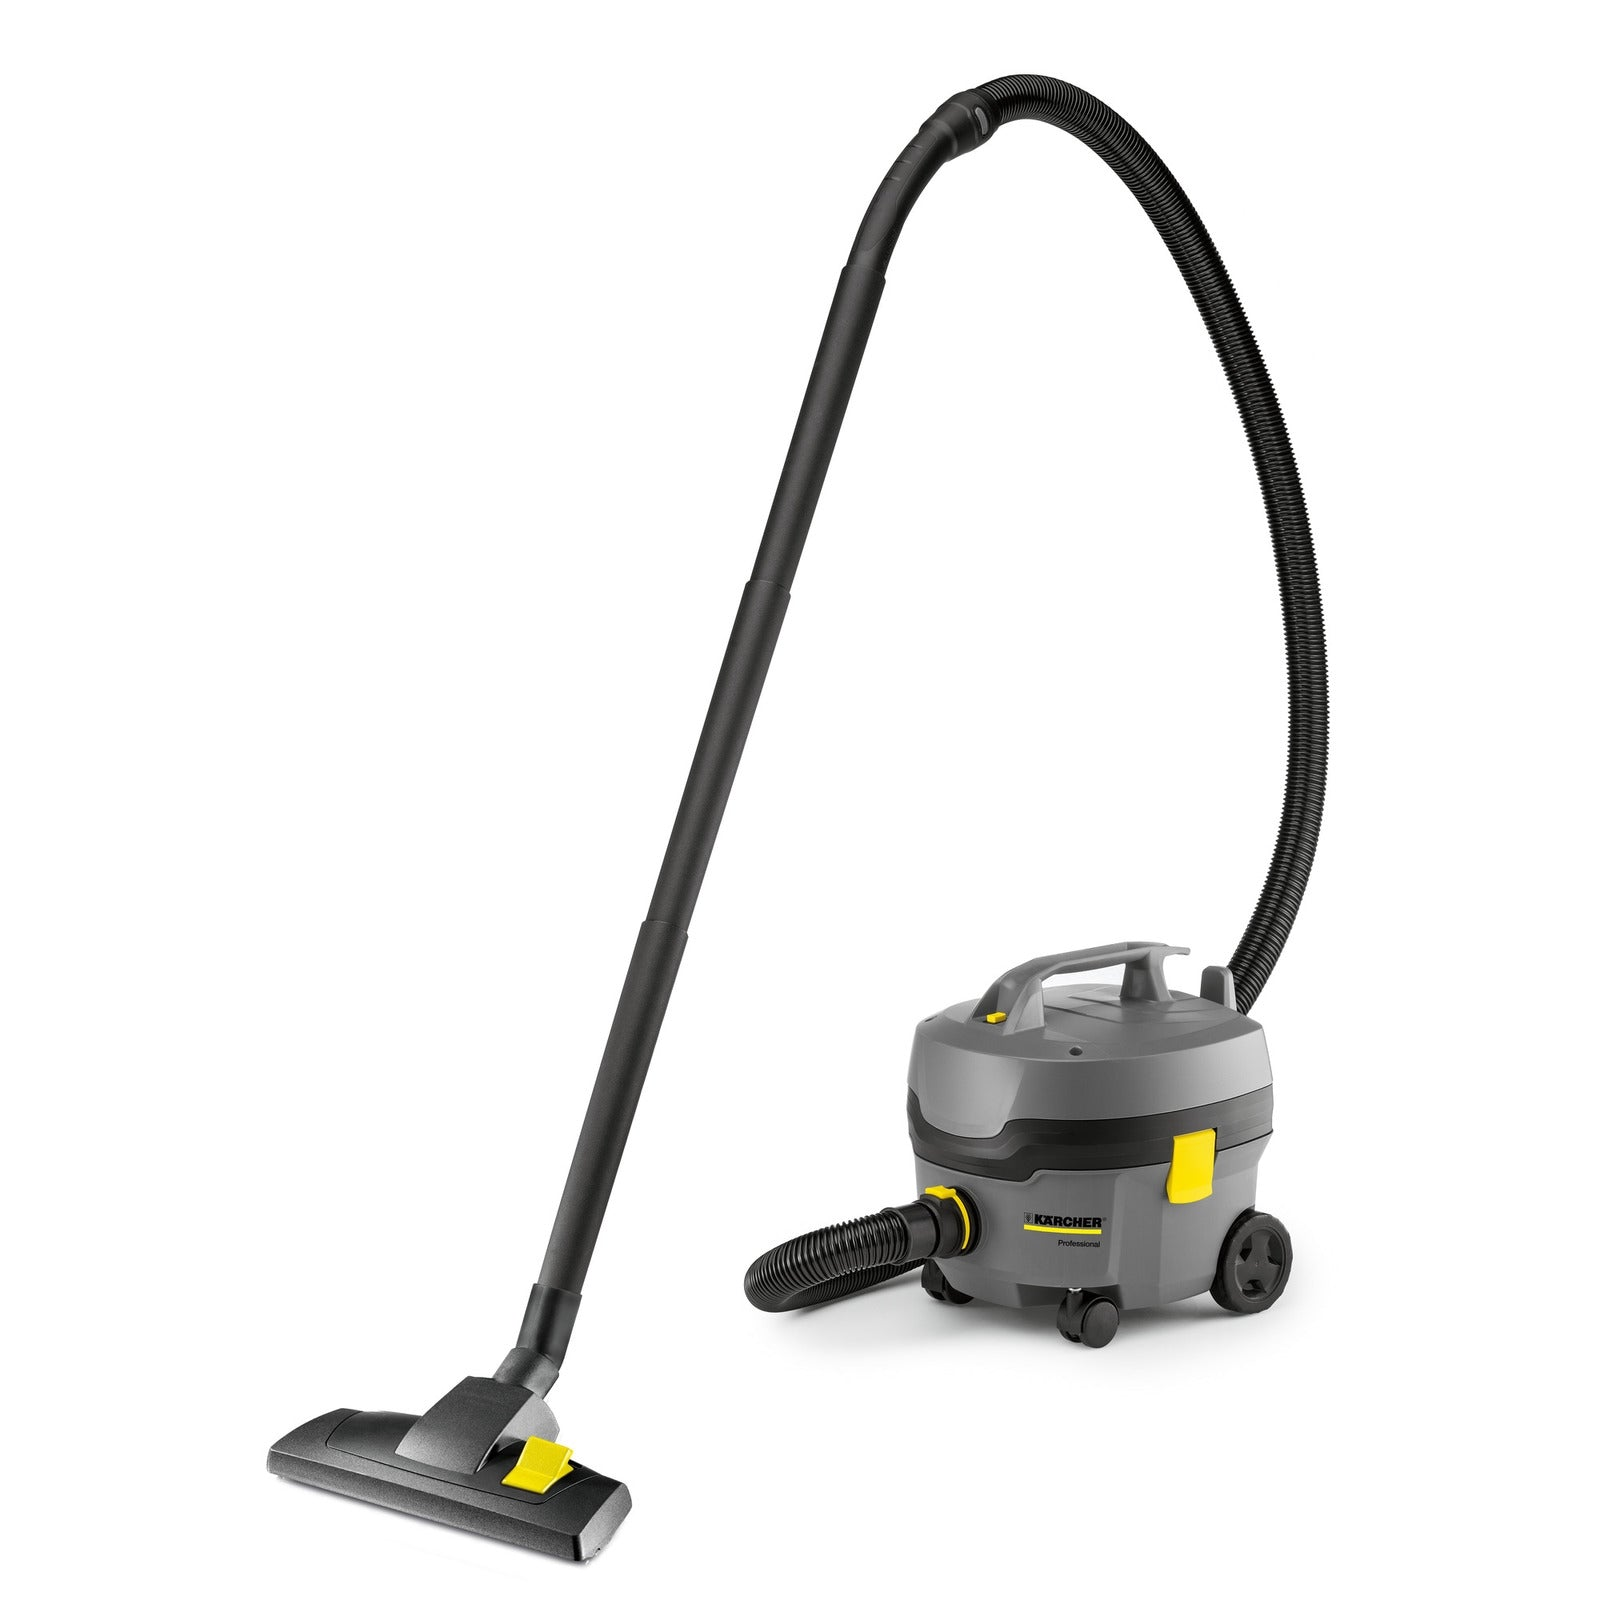 Karcher Professional T 7/1 Classic Dry Vacuum Cleaner 1000W 7.5L 7.5m Power Cord